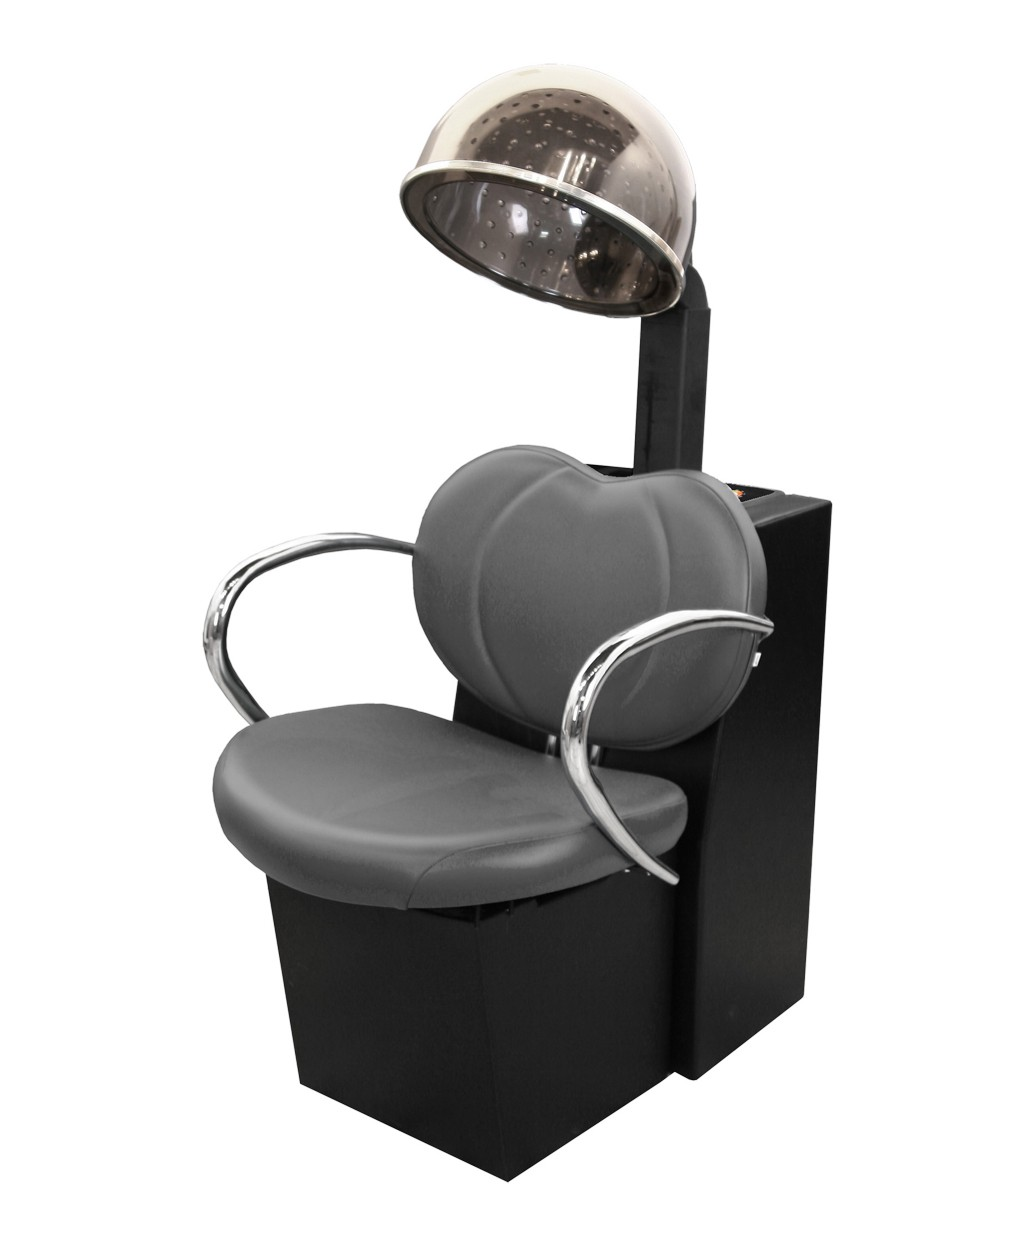 7020D Dryer Chair with SolAir Dryer